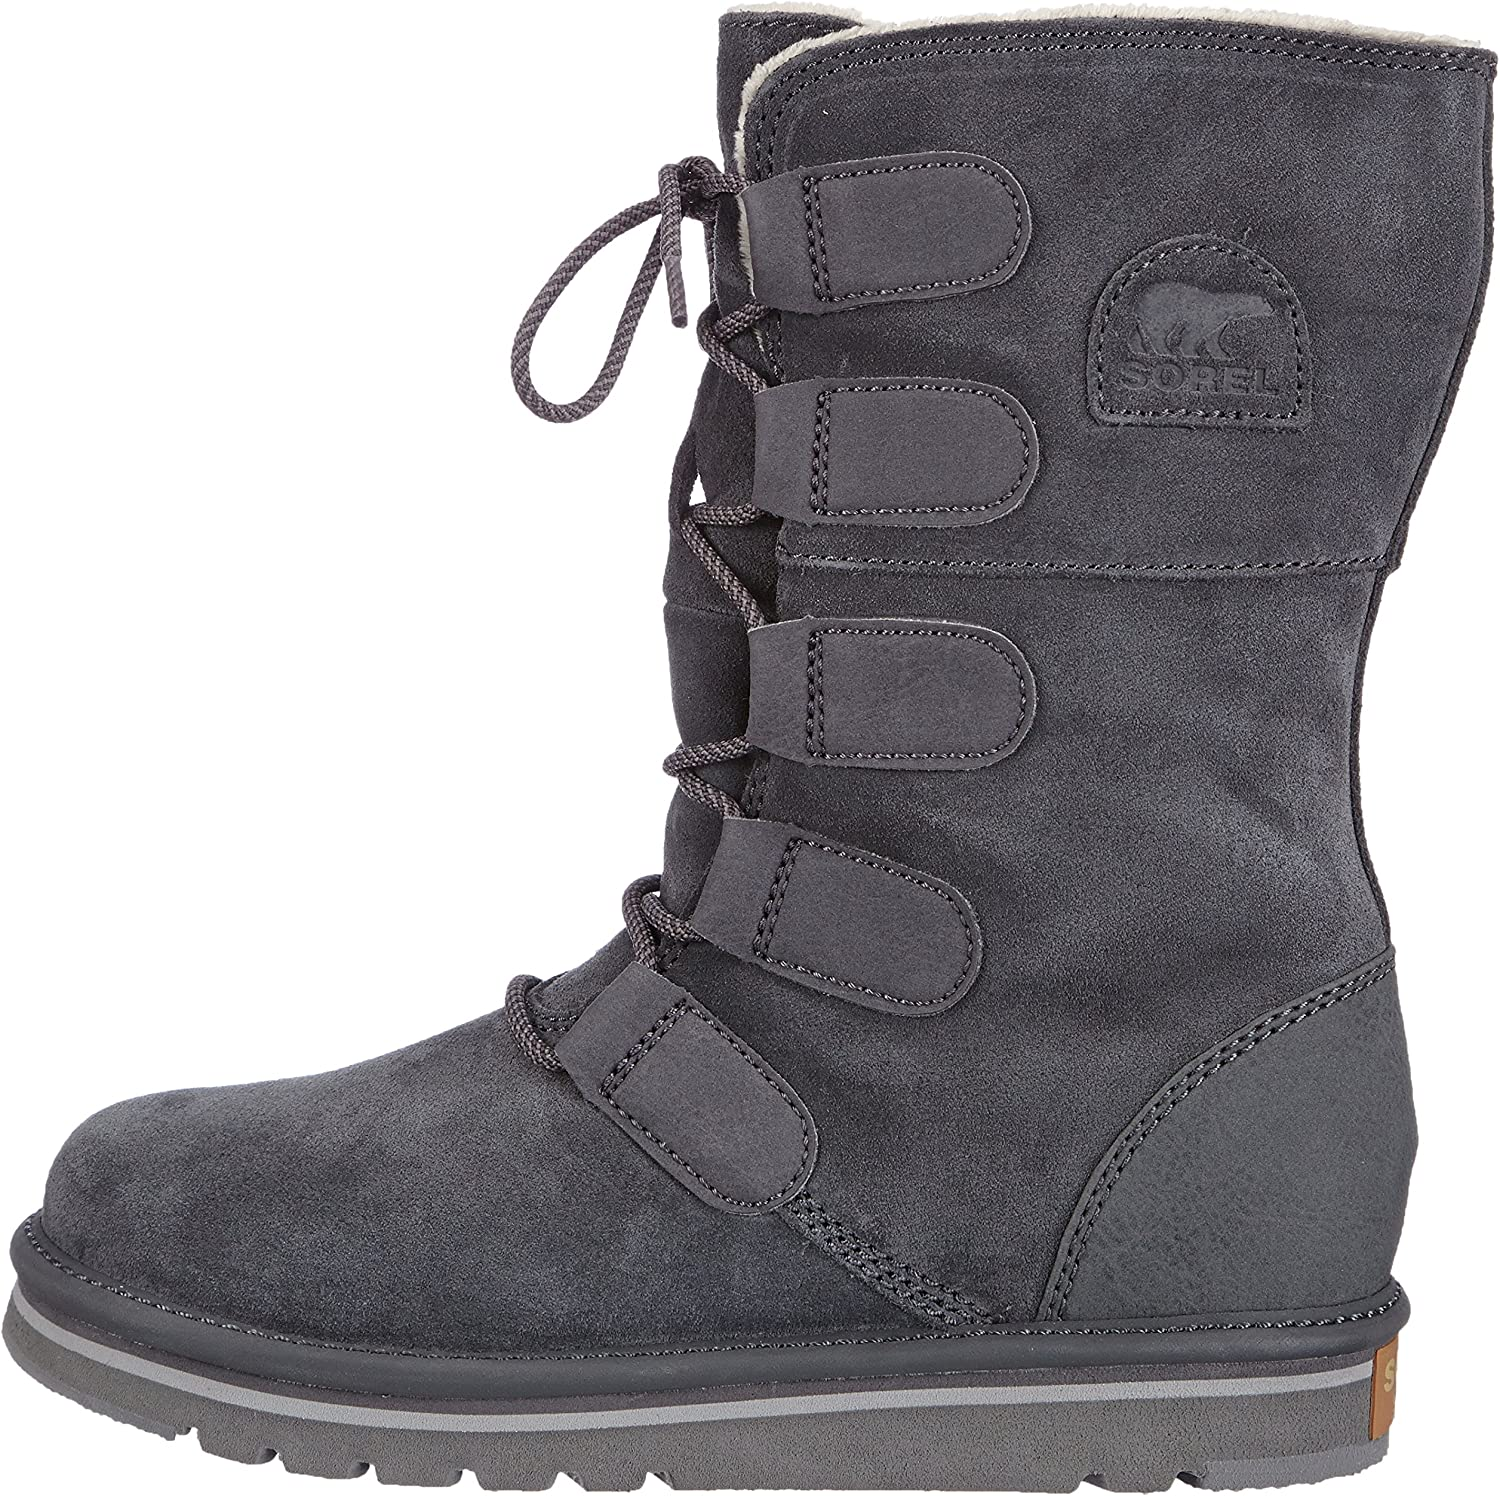 innovative design on feet images of uk availability Sorel The Campus Lace Boot Shoe - Grill - Womens - 7.5: Amazon.ca ...